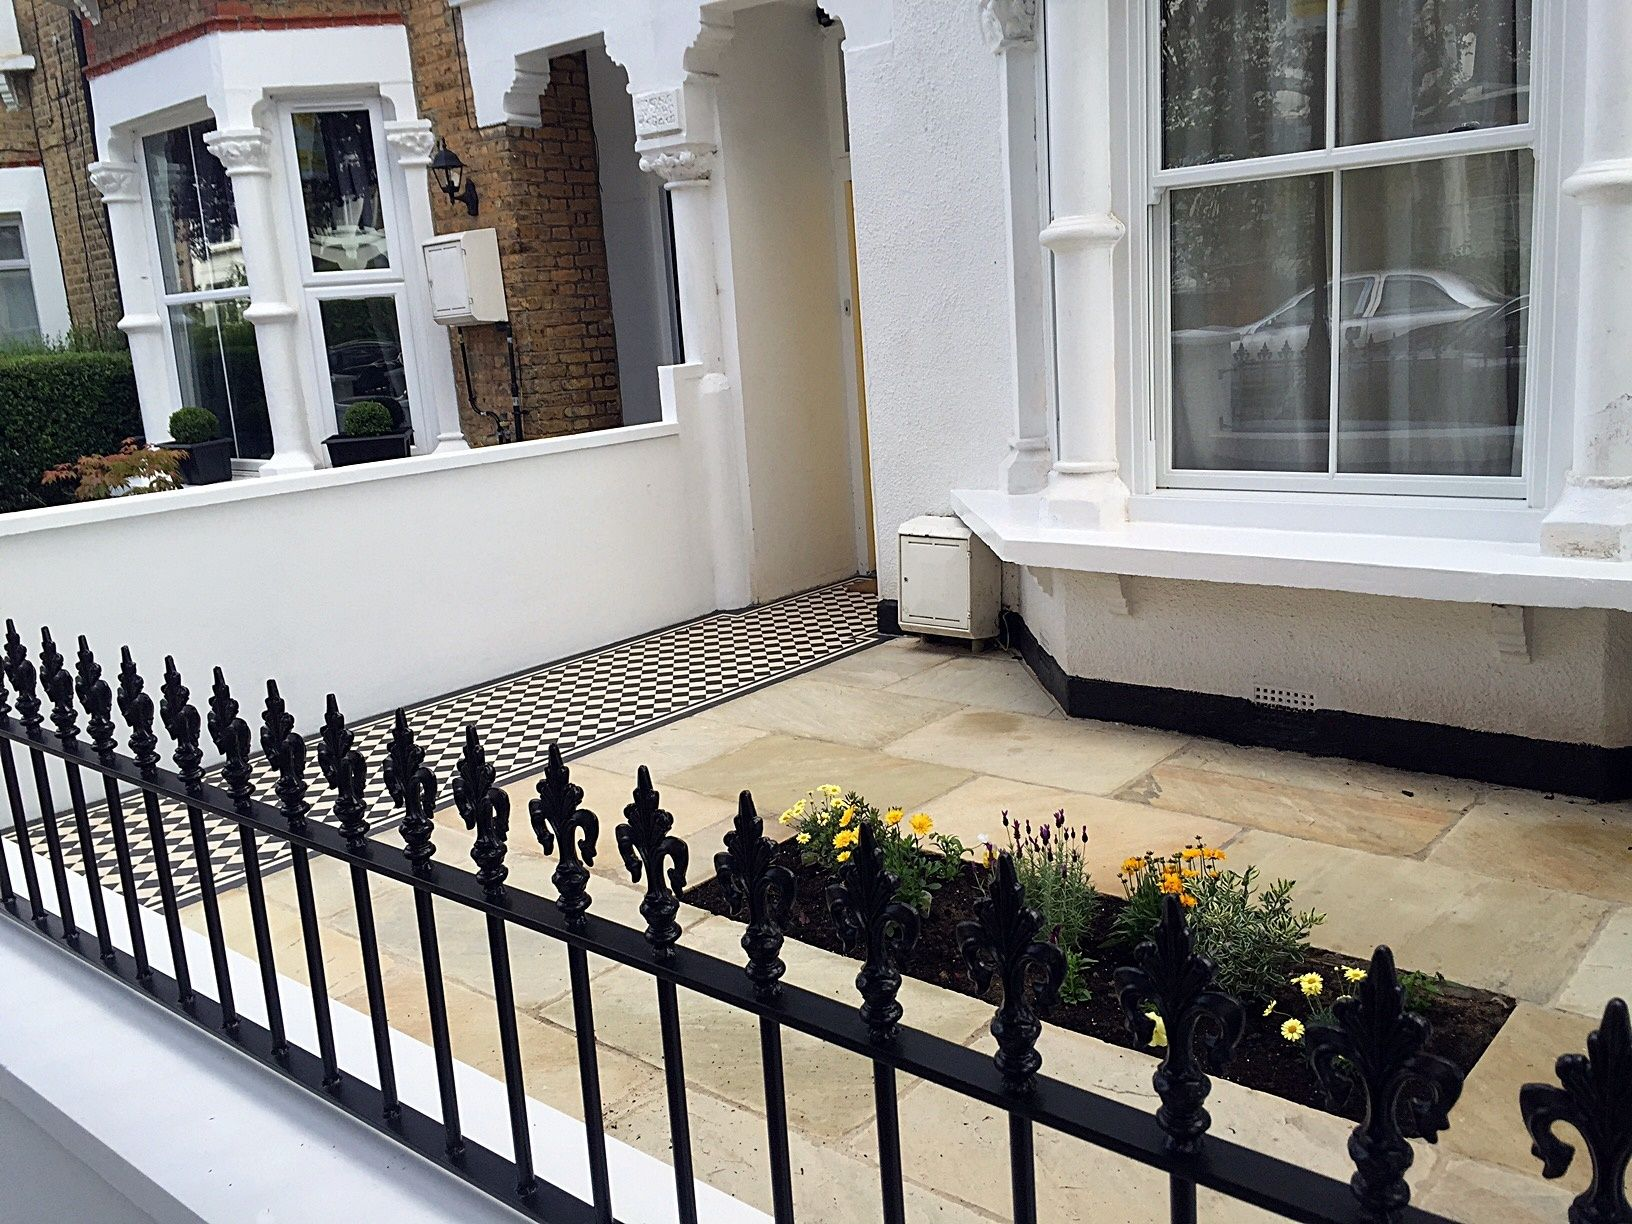 Metal Gate And Rail Victorian London Front Garden  Company Mosaic Paving Wall Yorkstone Caps And Bullnose London  (2738×1482)   Front Garden   Pinterest ...